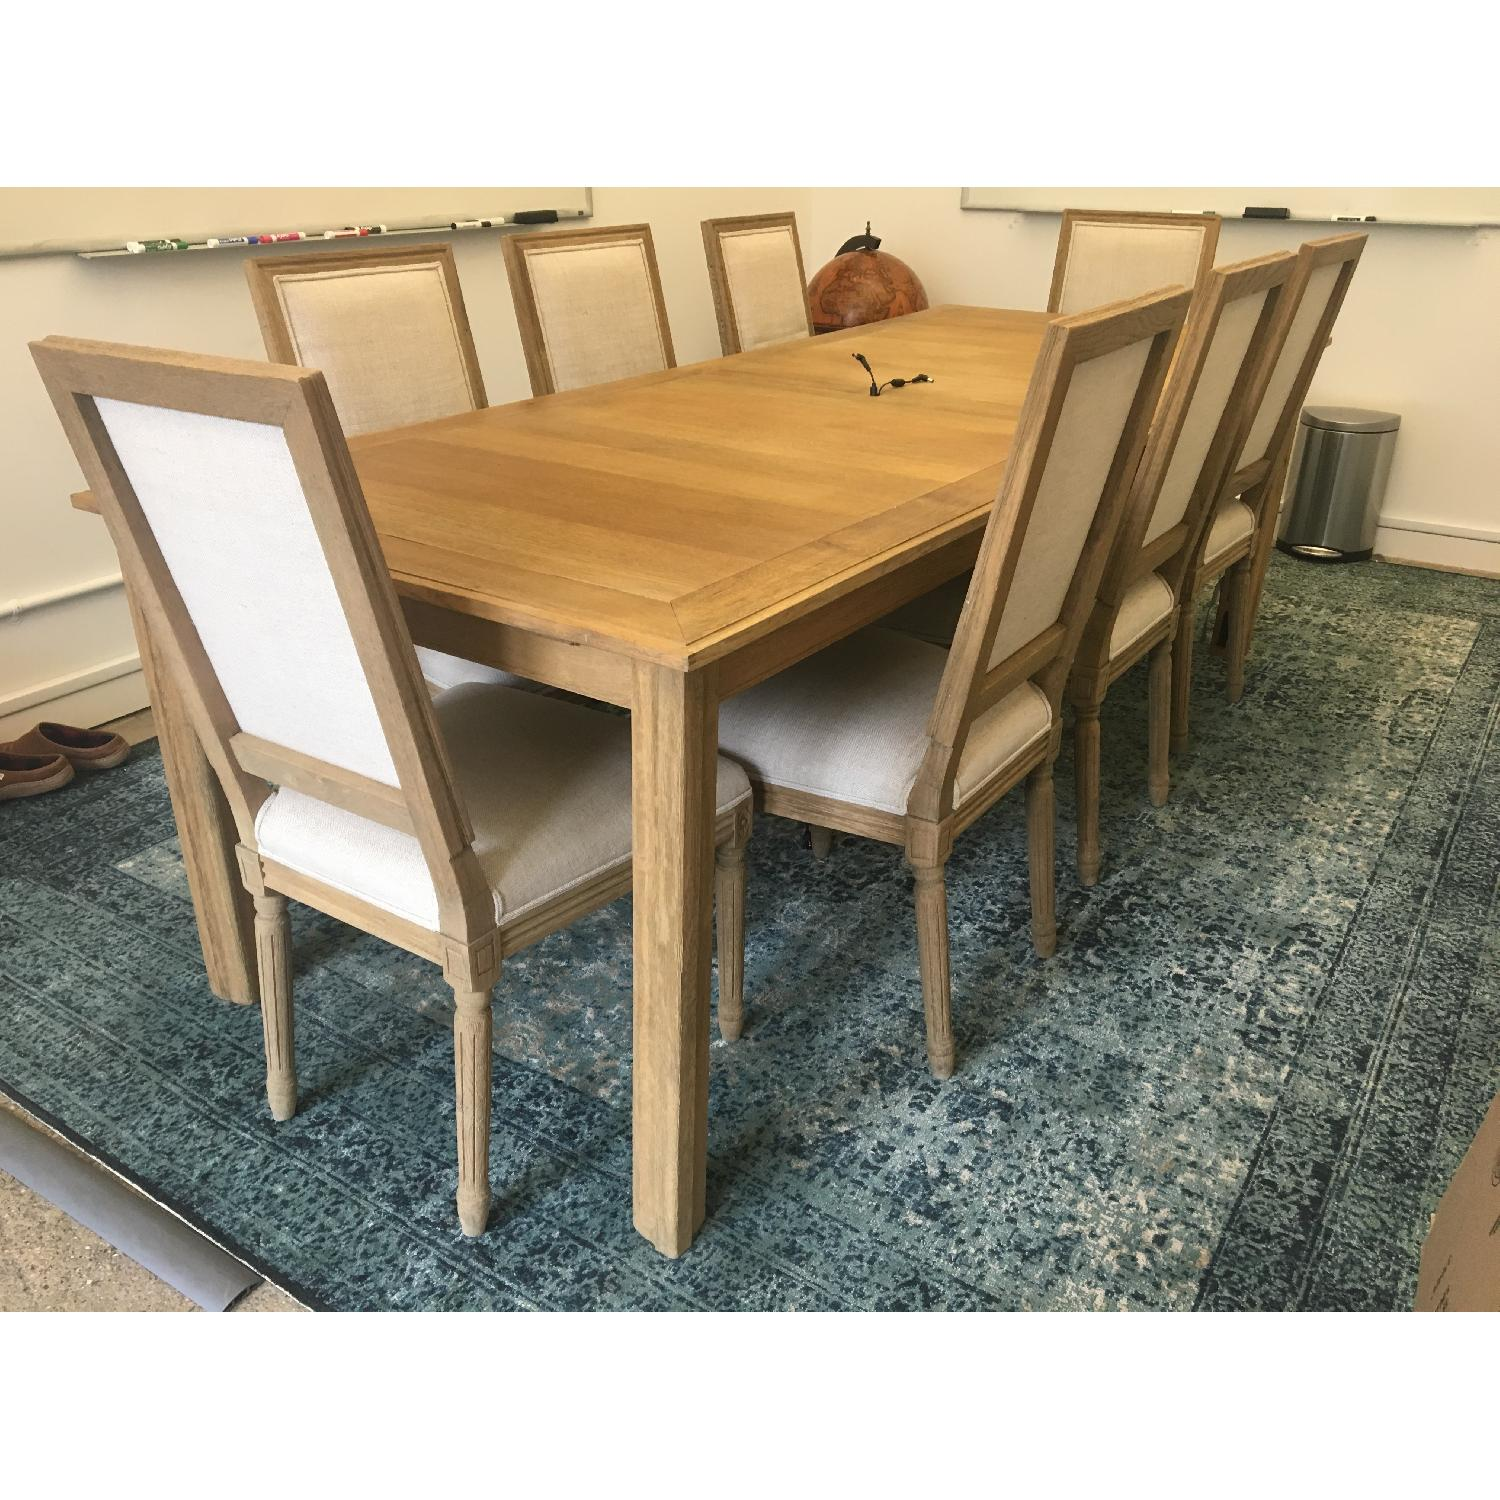 Restoration Hardware Parsons Extension Table W/ 10 Chairs ...